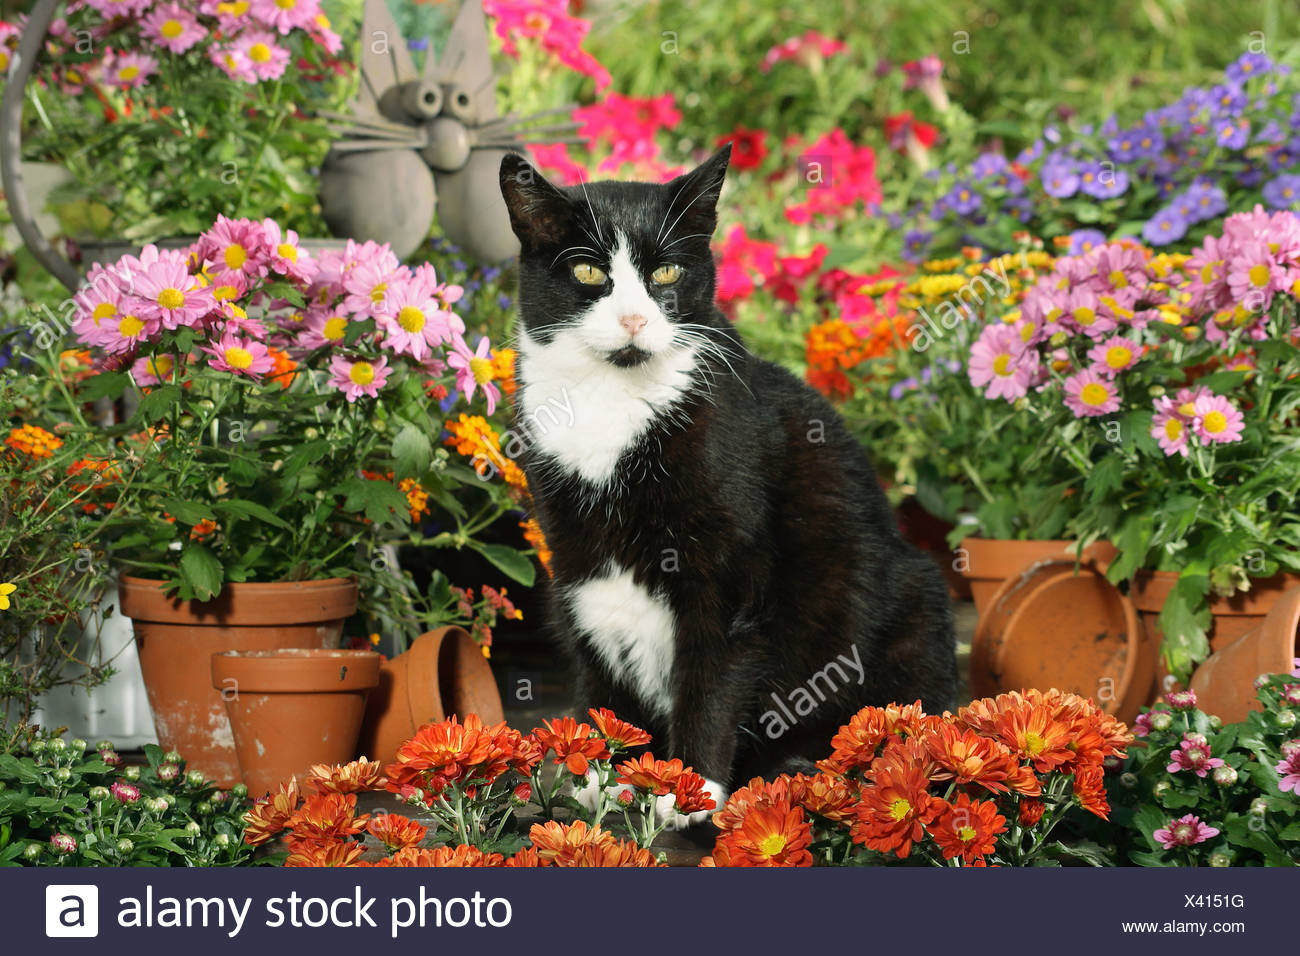 black white domestic cat in between flowers - Stock Image